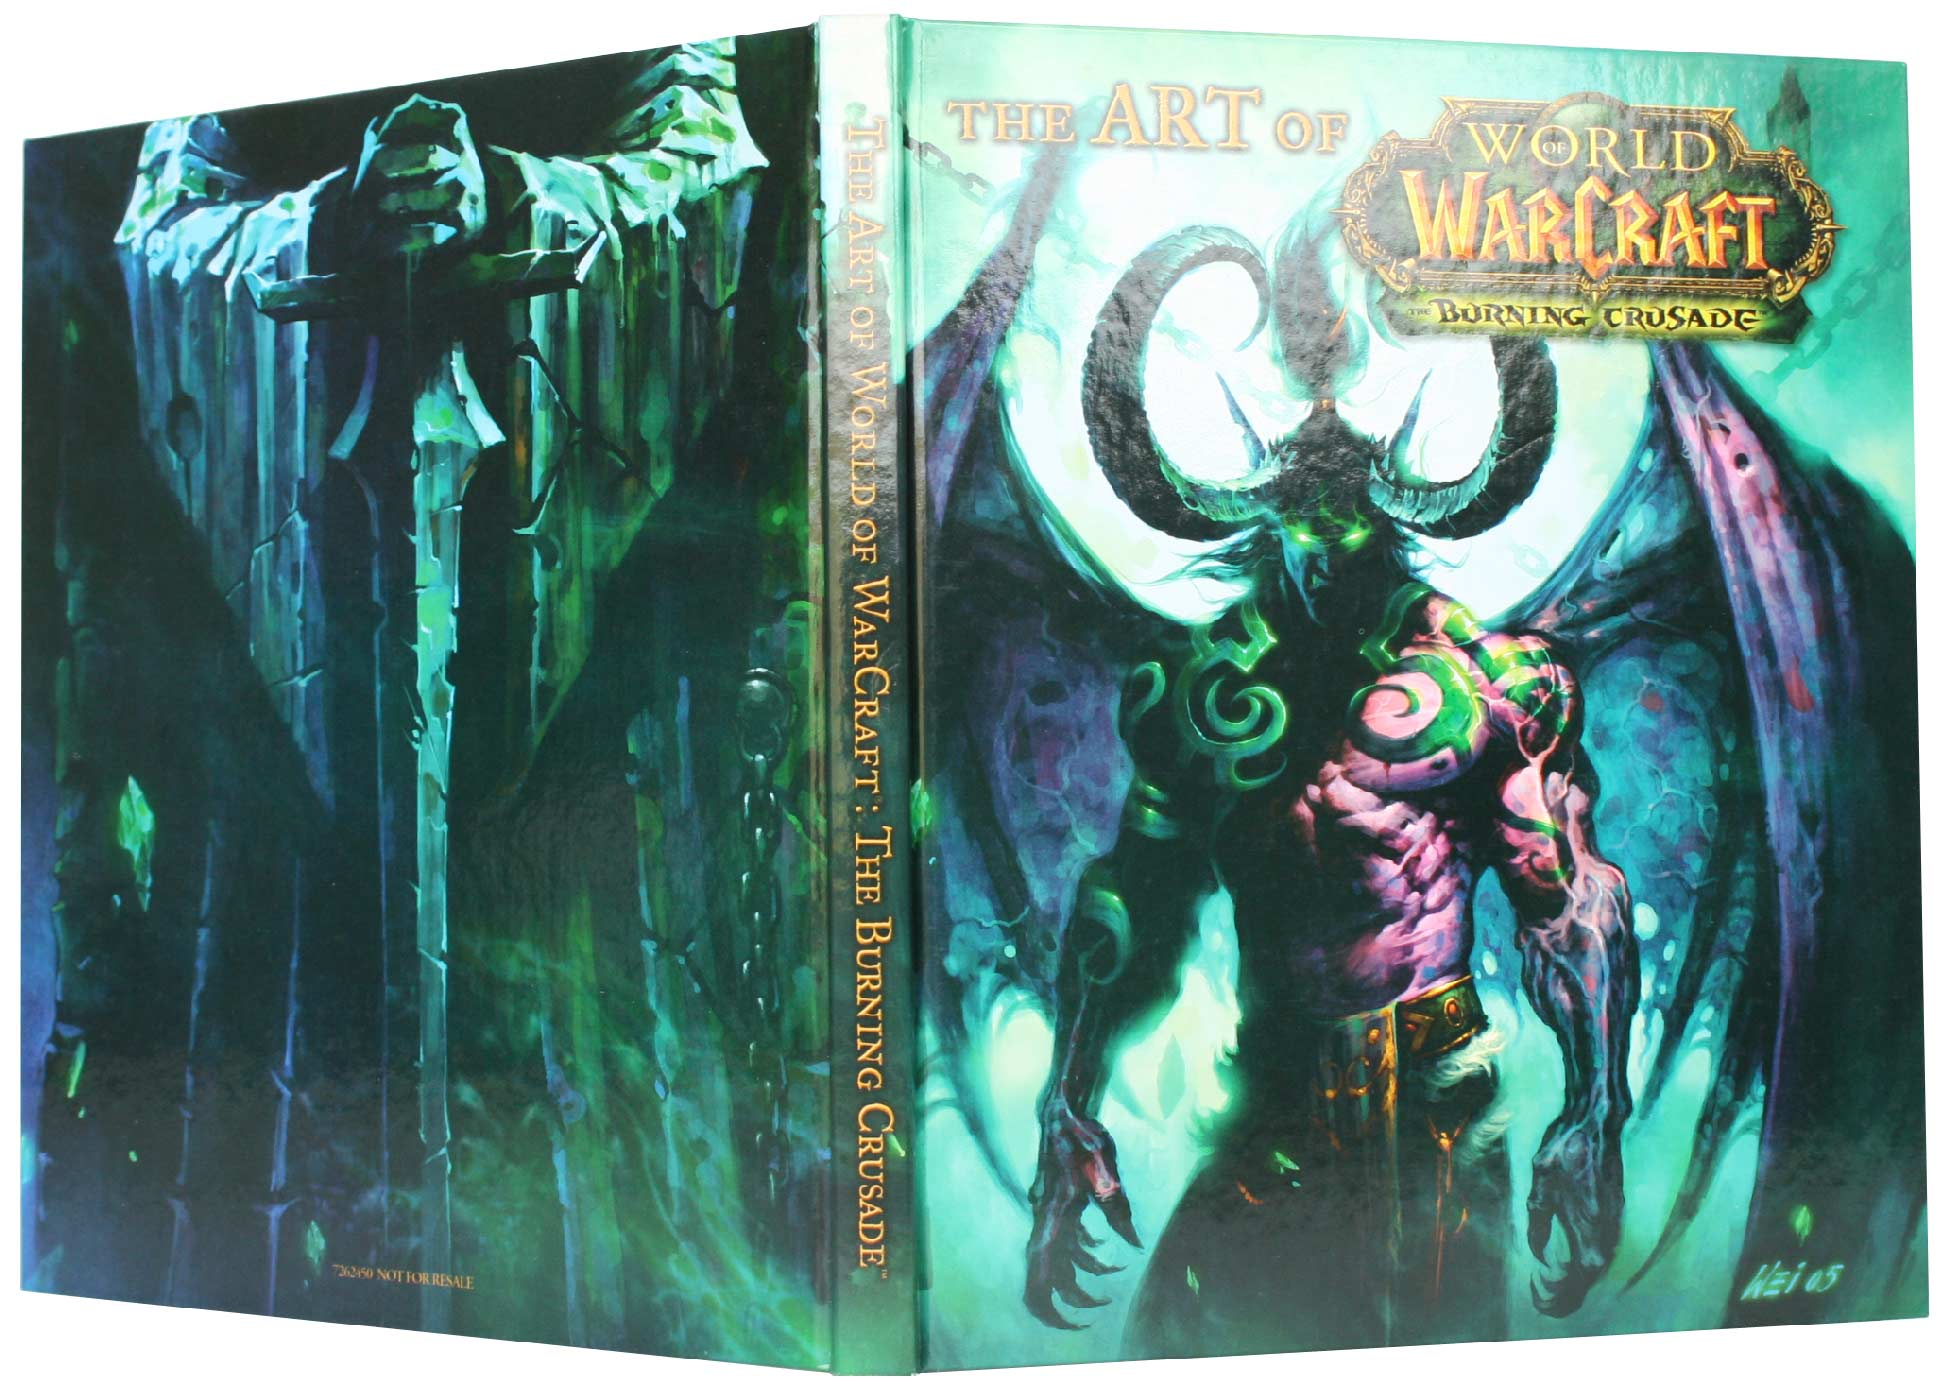 Couverture de l'Art book : The Art of the Burning Crusade (World of Warcraft)